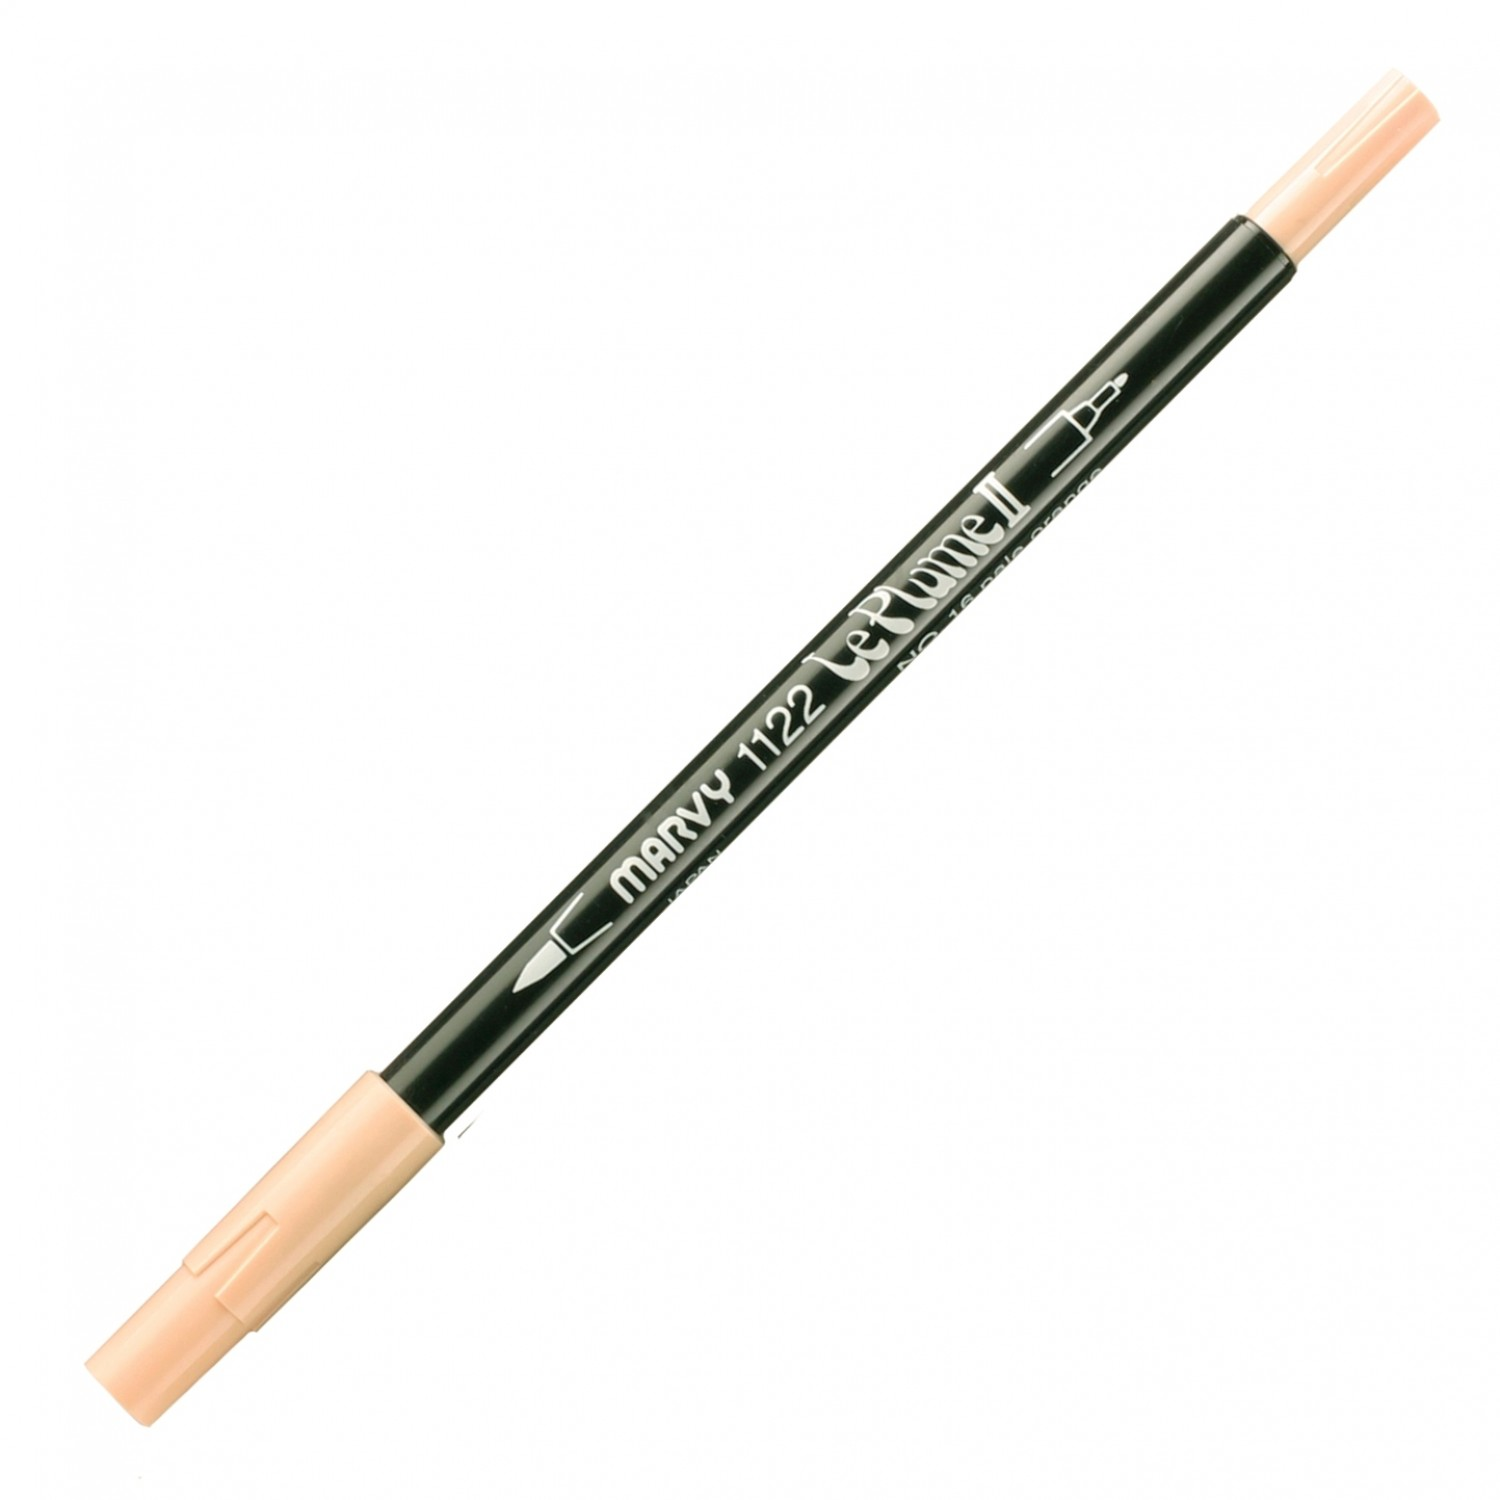 Marvy Le Plume II Double Ended Watercolor Marker, Pale Orange